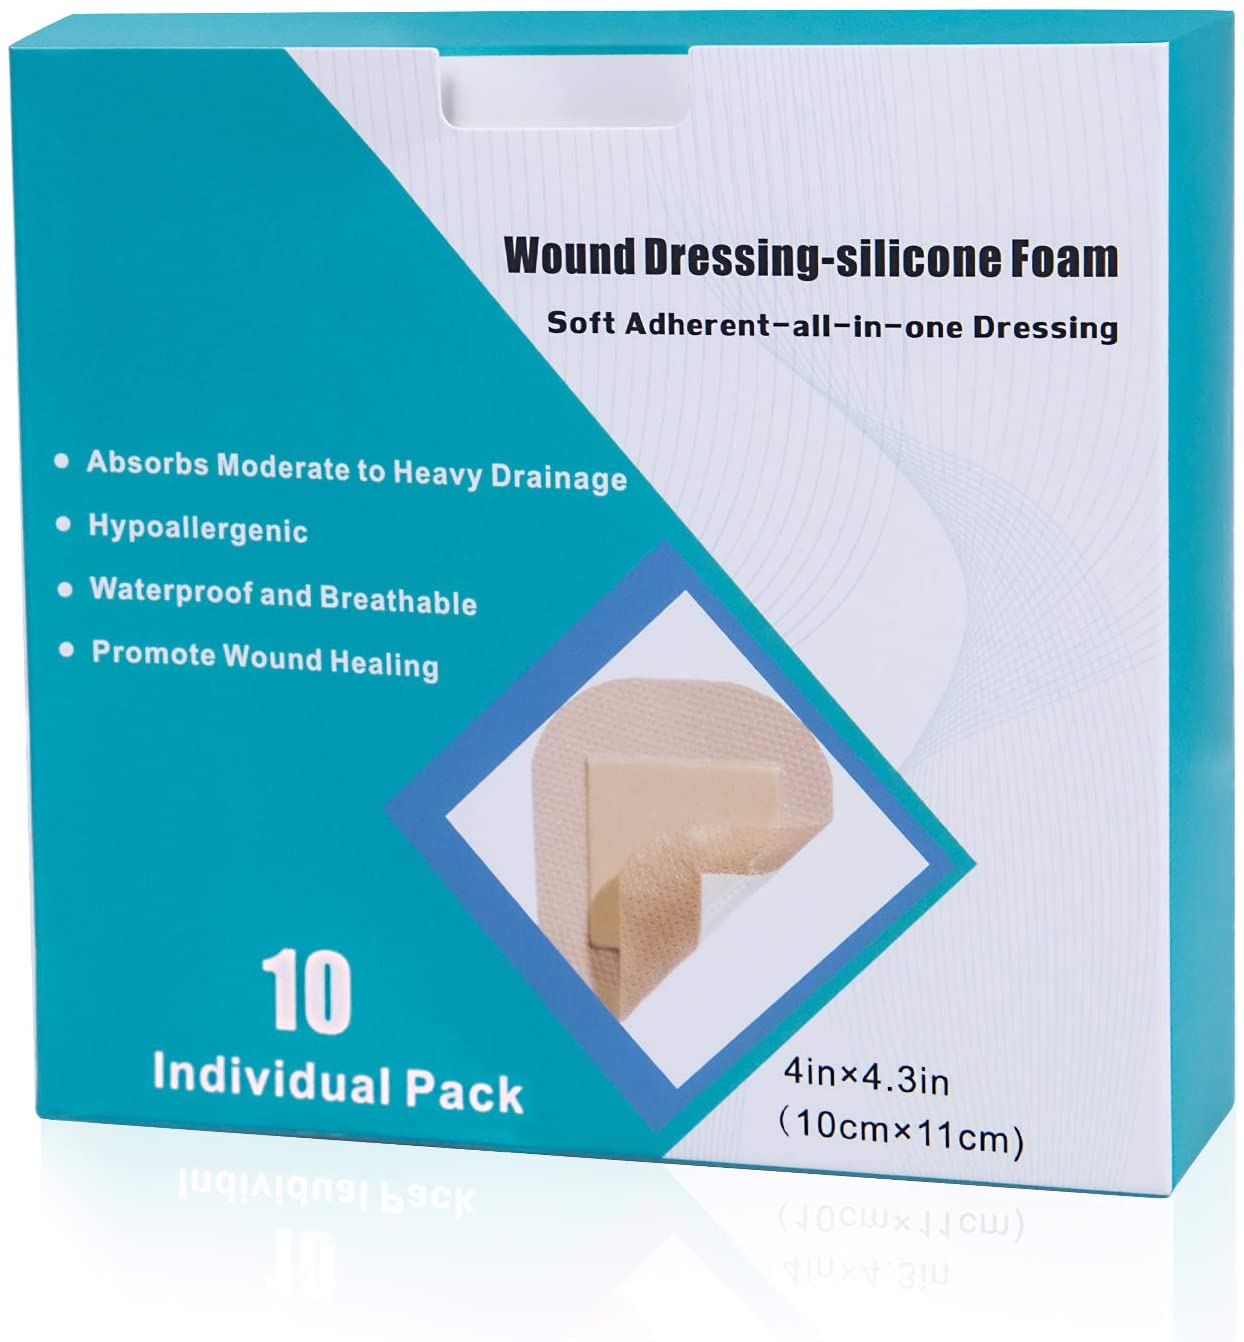 Silicone Foam Dressing 10 Pack with Border Adhesive Hydrophilic Foam Wound Dressing Waterproof Dressing for Wounds Care